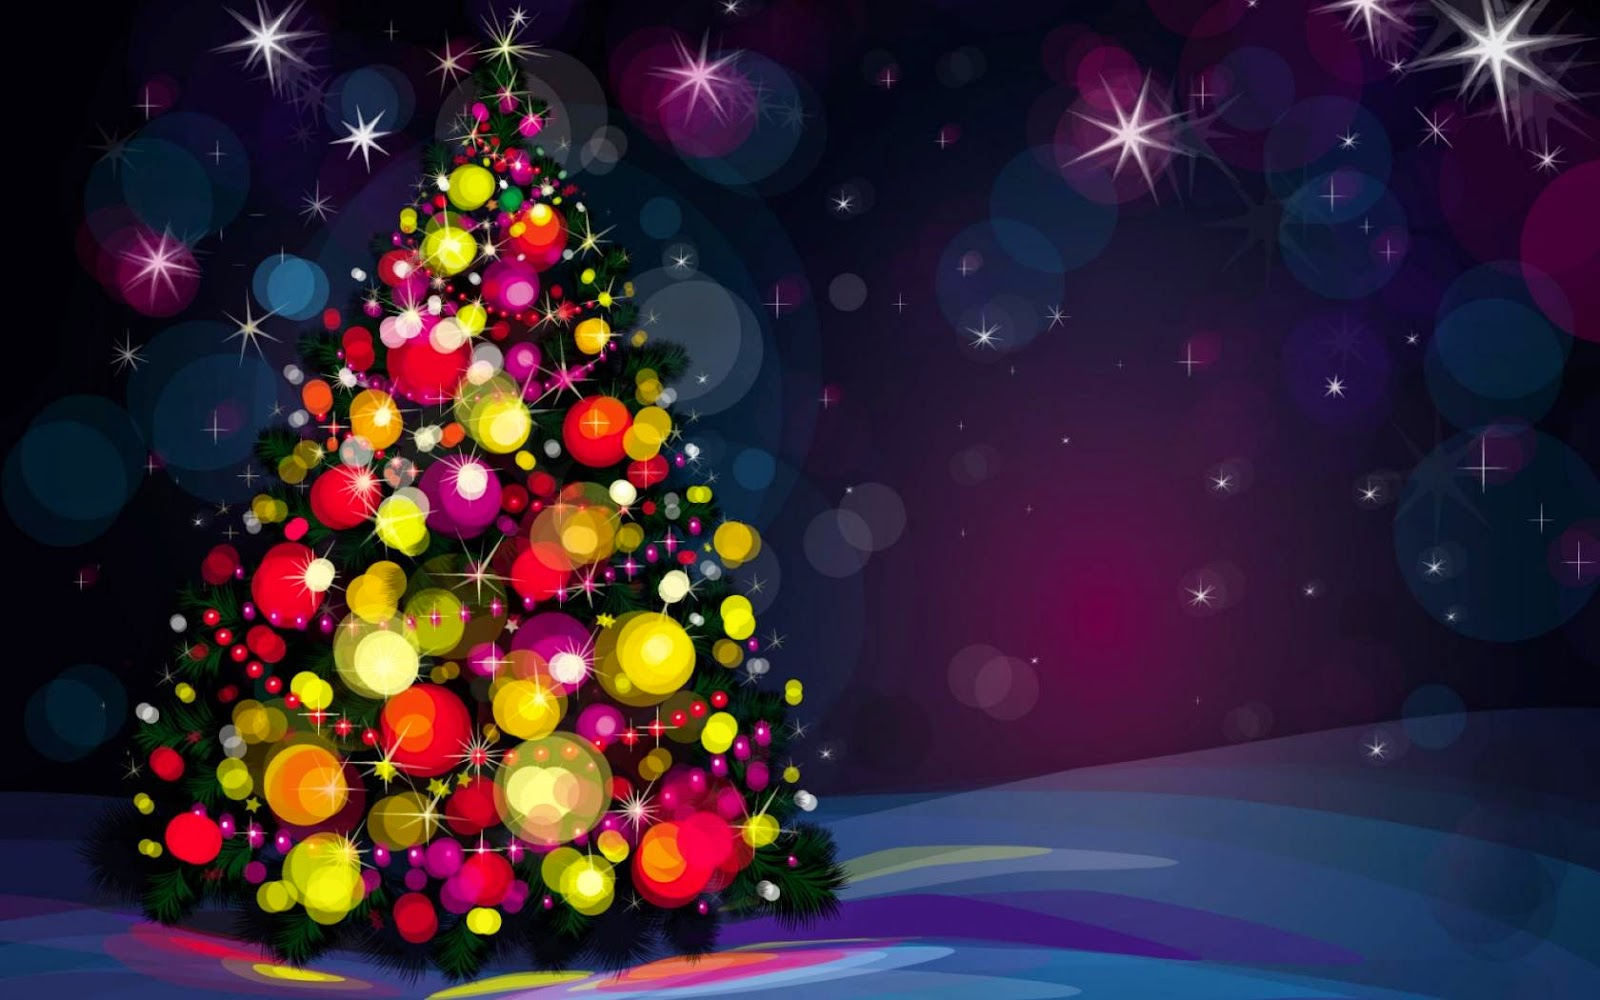 Glittering-Christmas-tree-with-stars-shining-vector-abstract-graphics-image.jpg